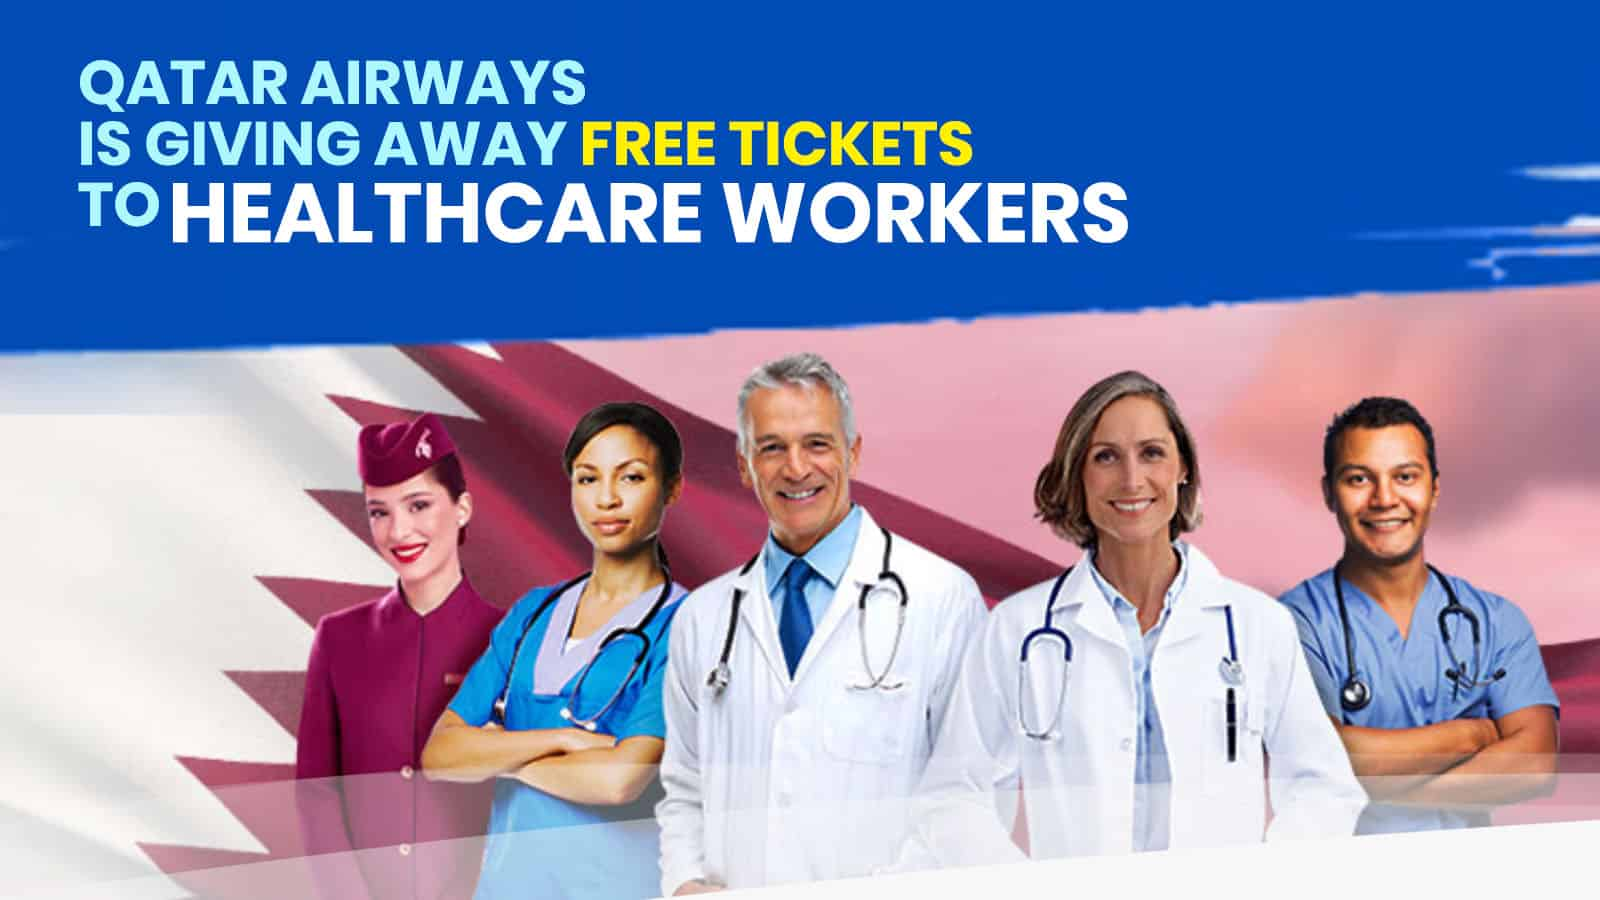 Qatar Airways: 100,000 FREE Tickets for HEALTHCARE PROFESSIONALS